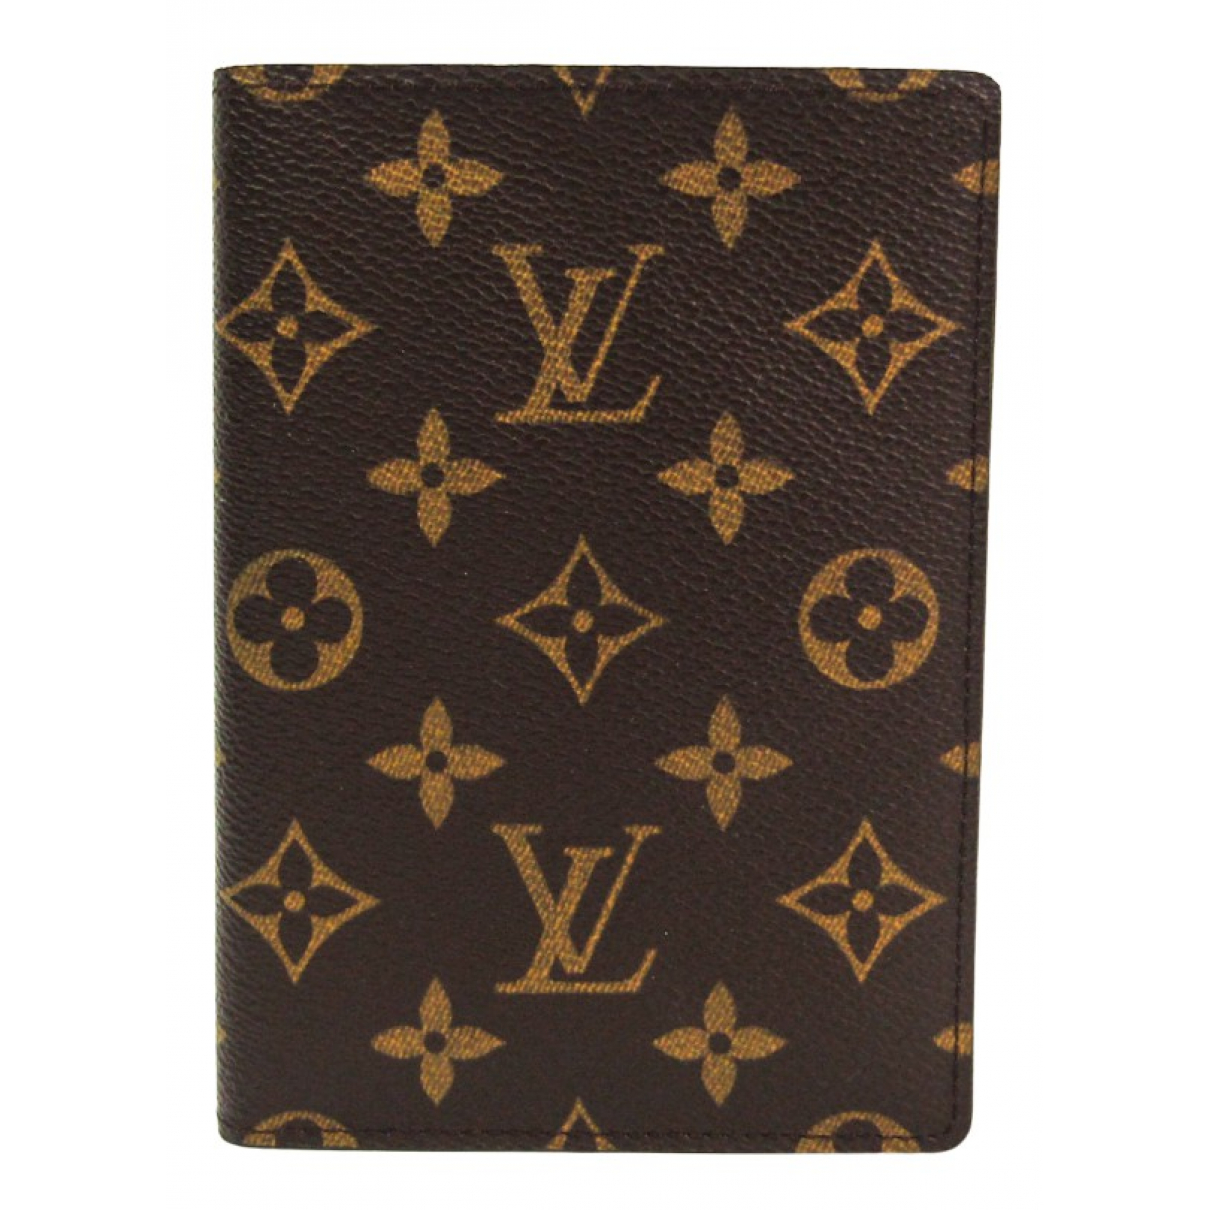 Louis Vuitton \N Portemonnaie in  Braun Leinen